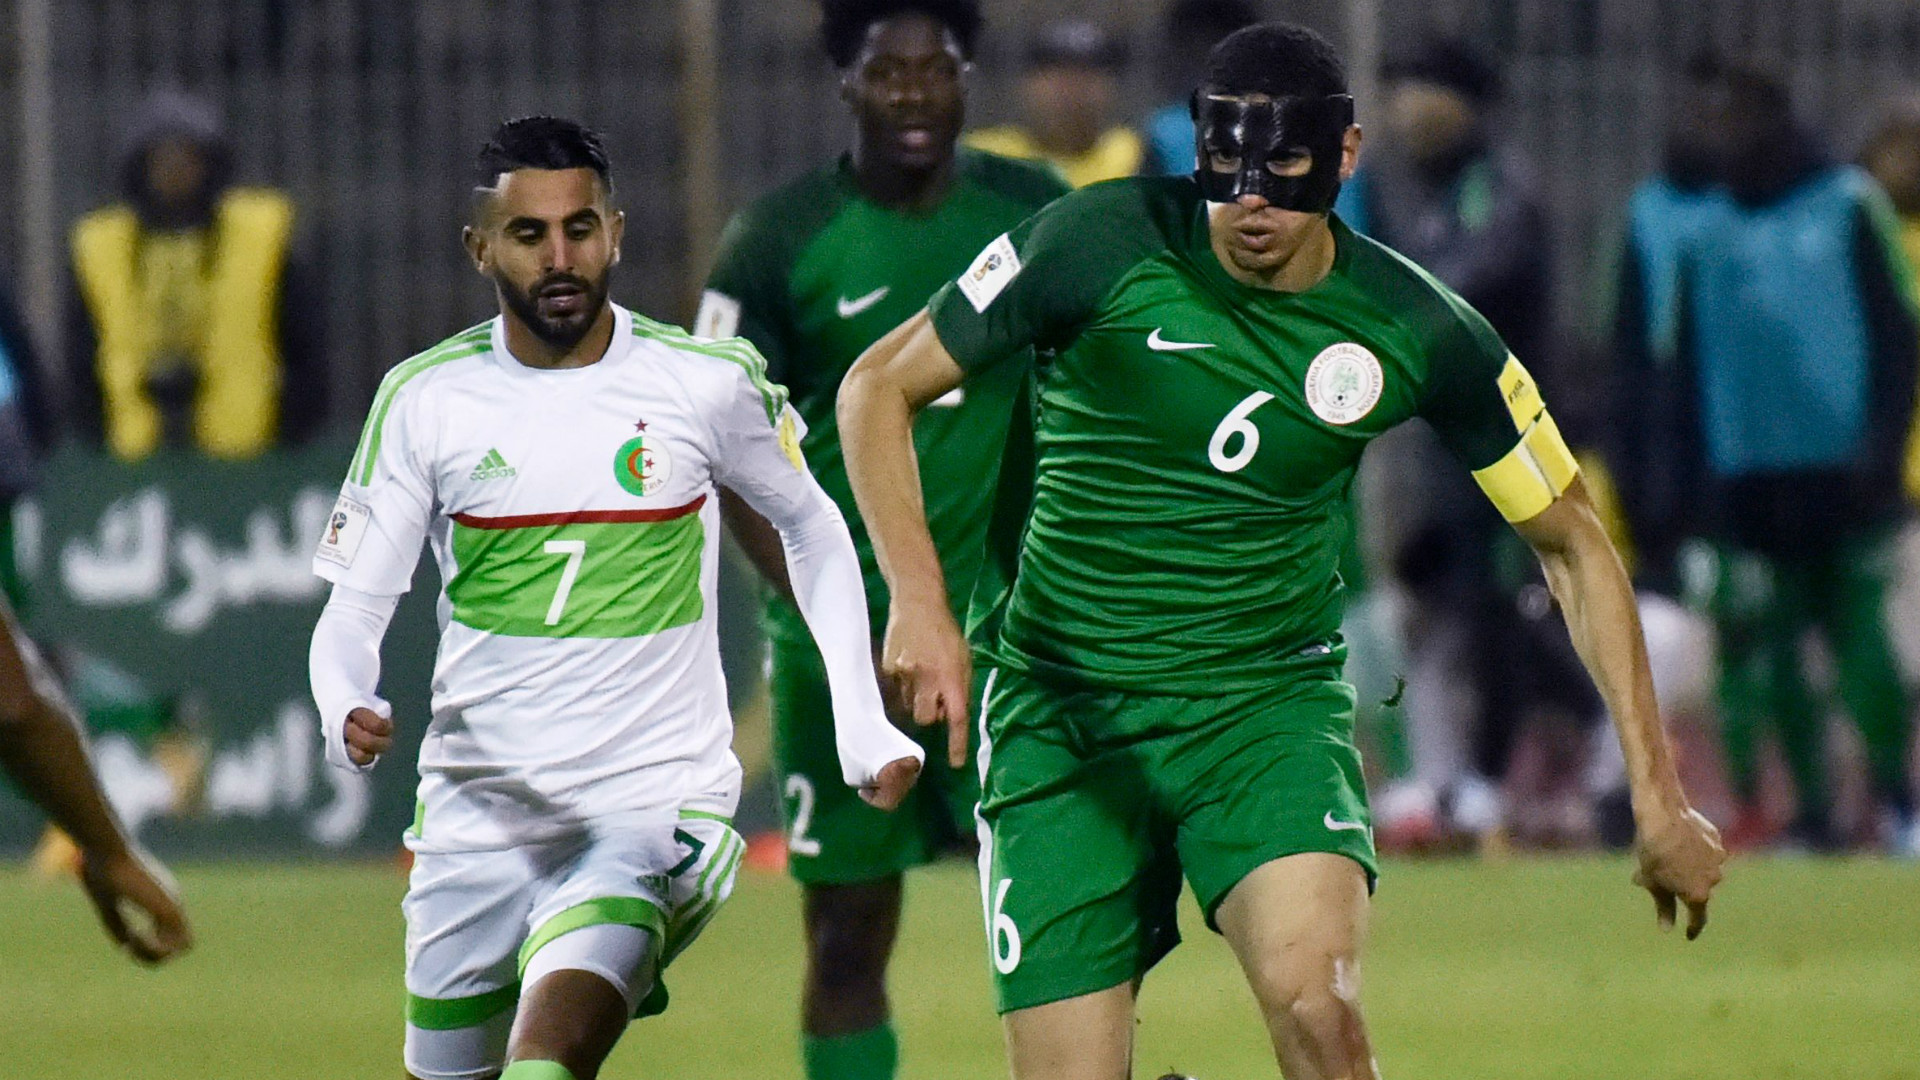 Argentina misses Messi in friendly loss to Nigeria